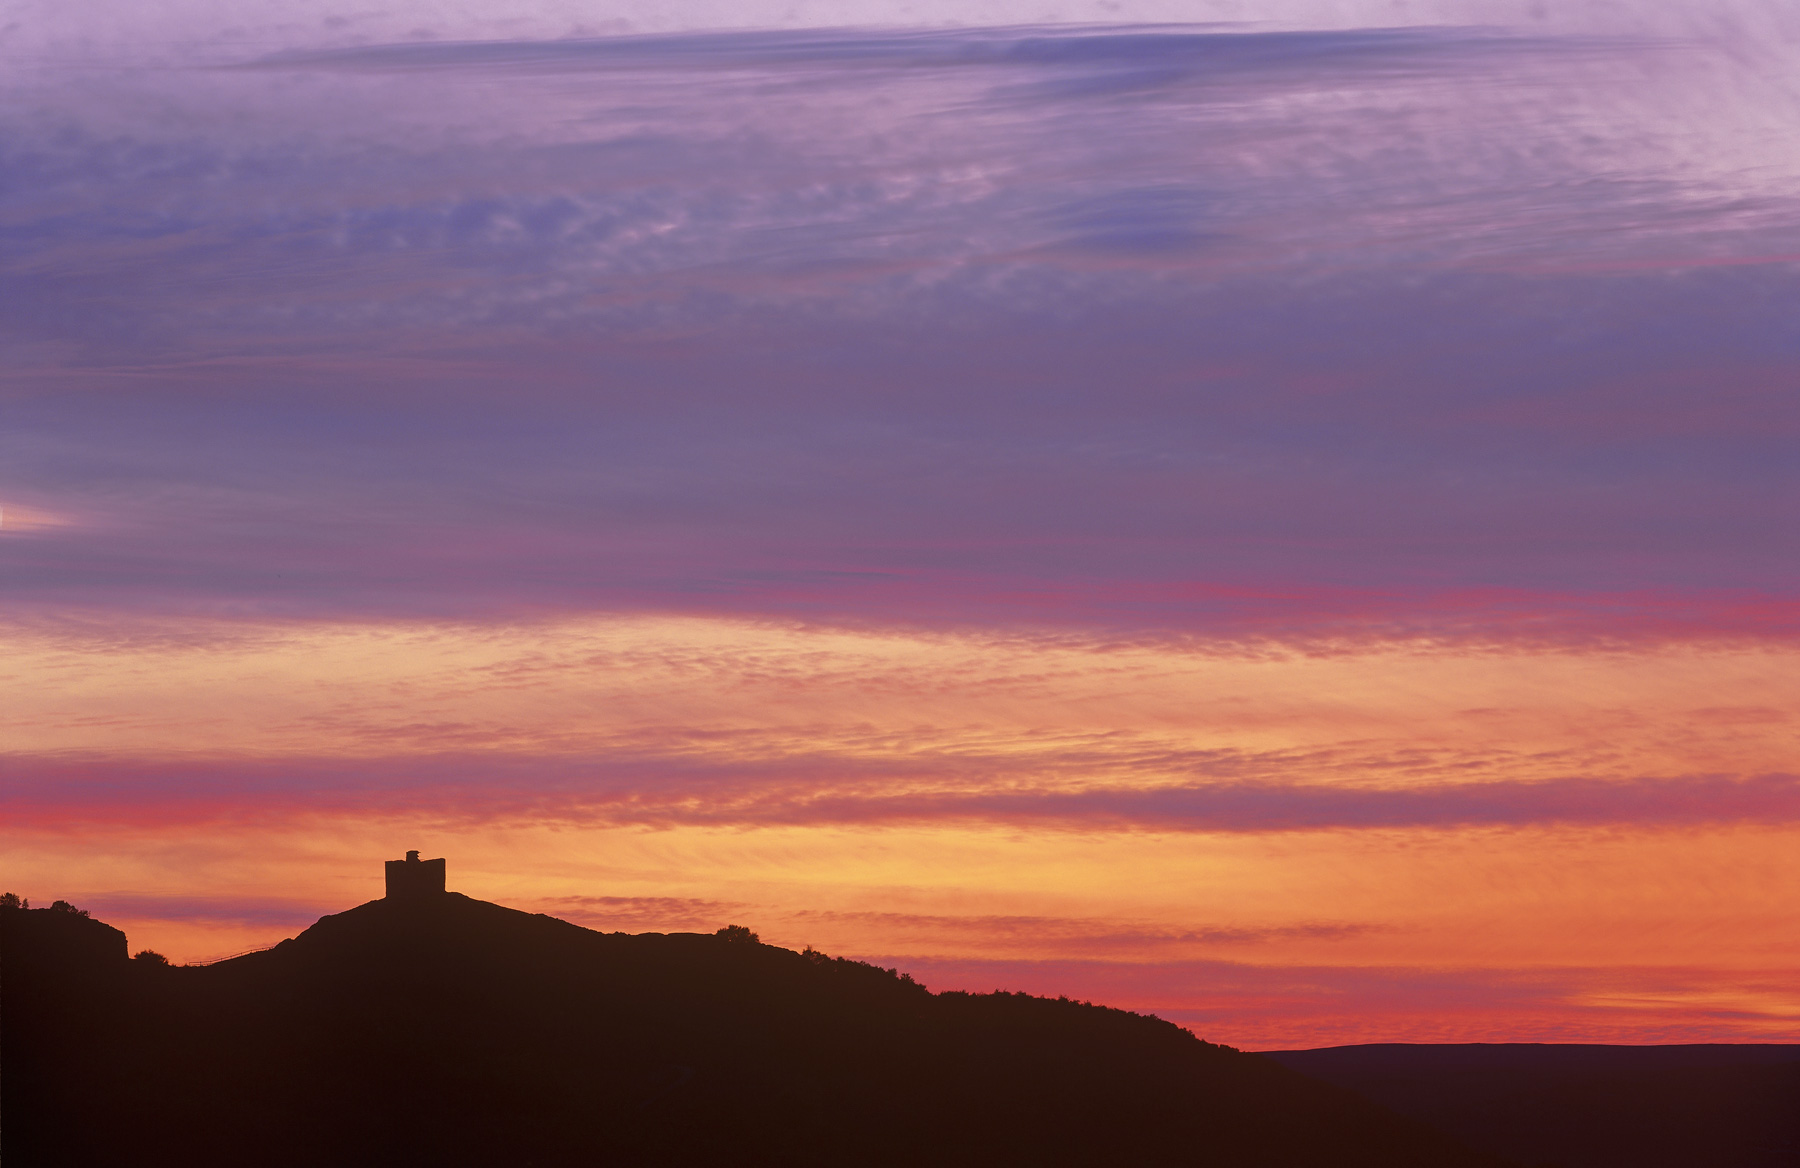 Castle Varrich Silhouette, Tongue, Sutherland, Scotlandsquare, block, perched, hill top, structure, sunset, fiery, red, , photo